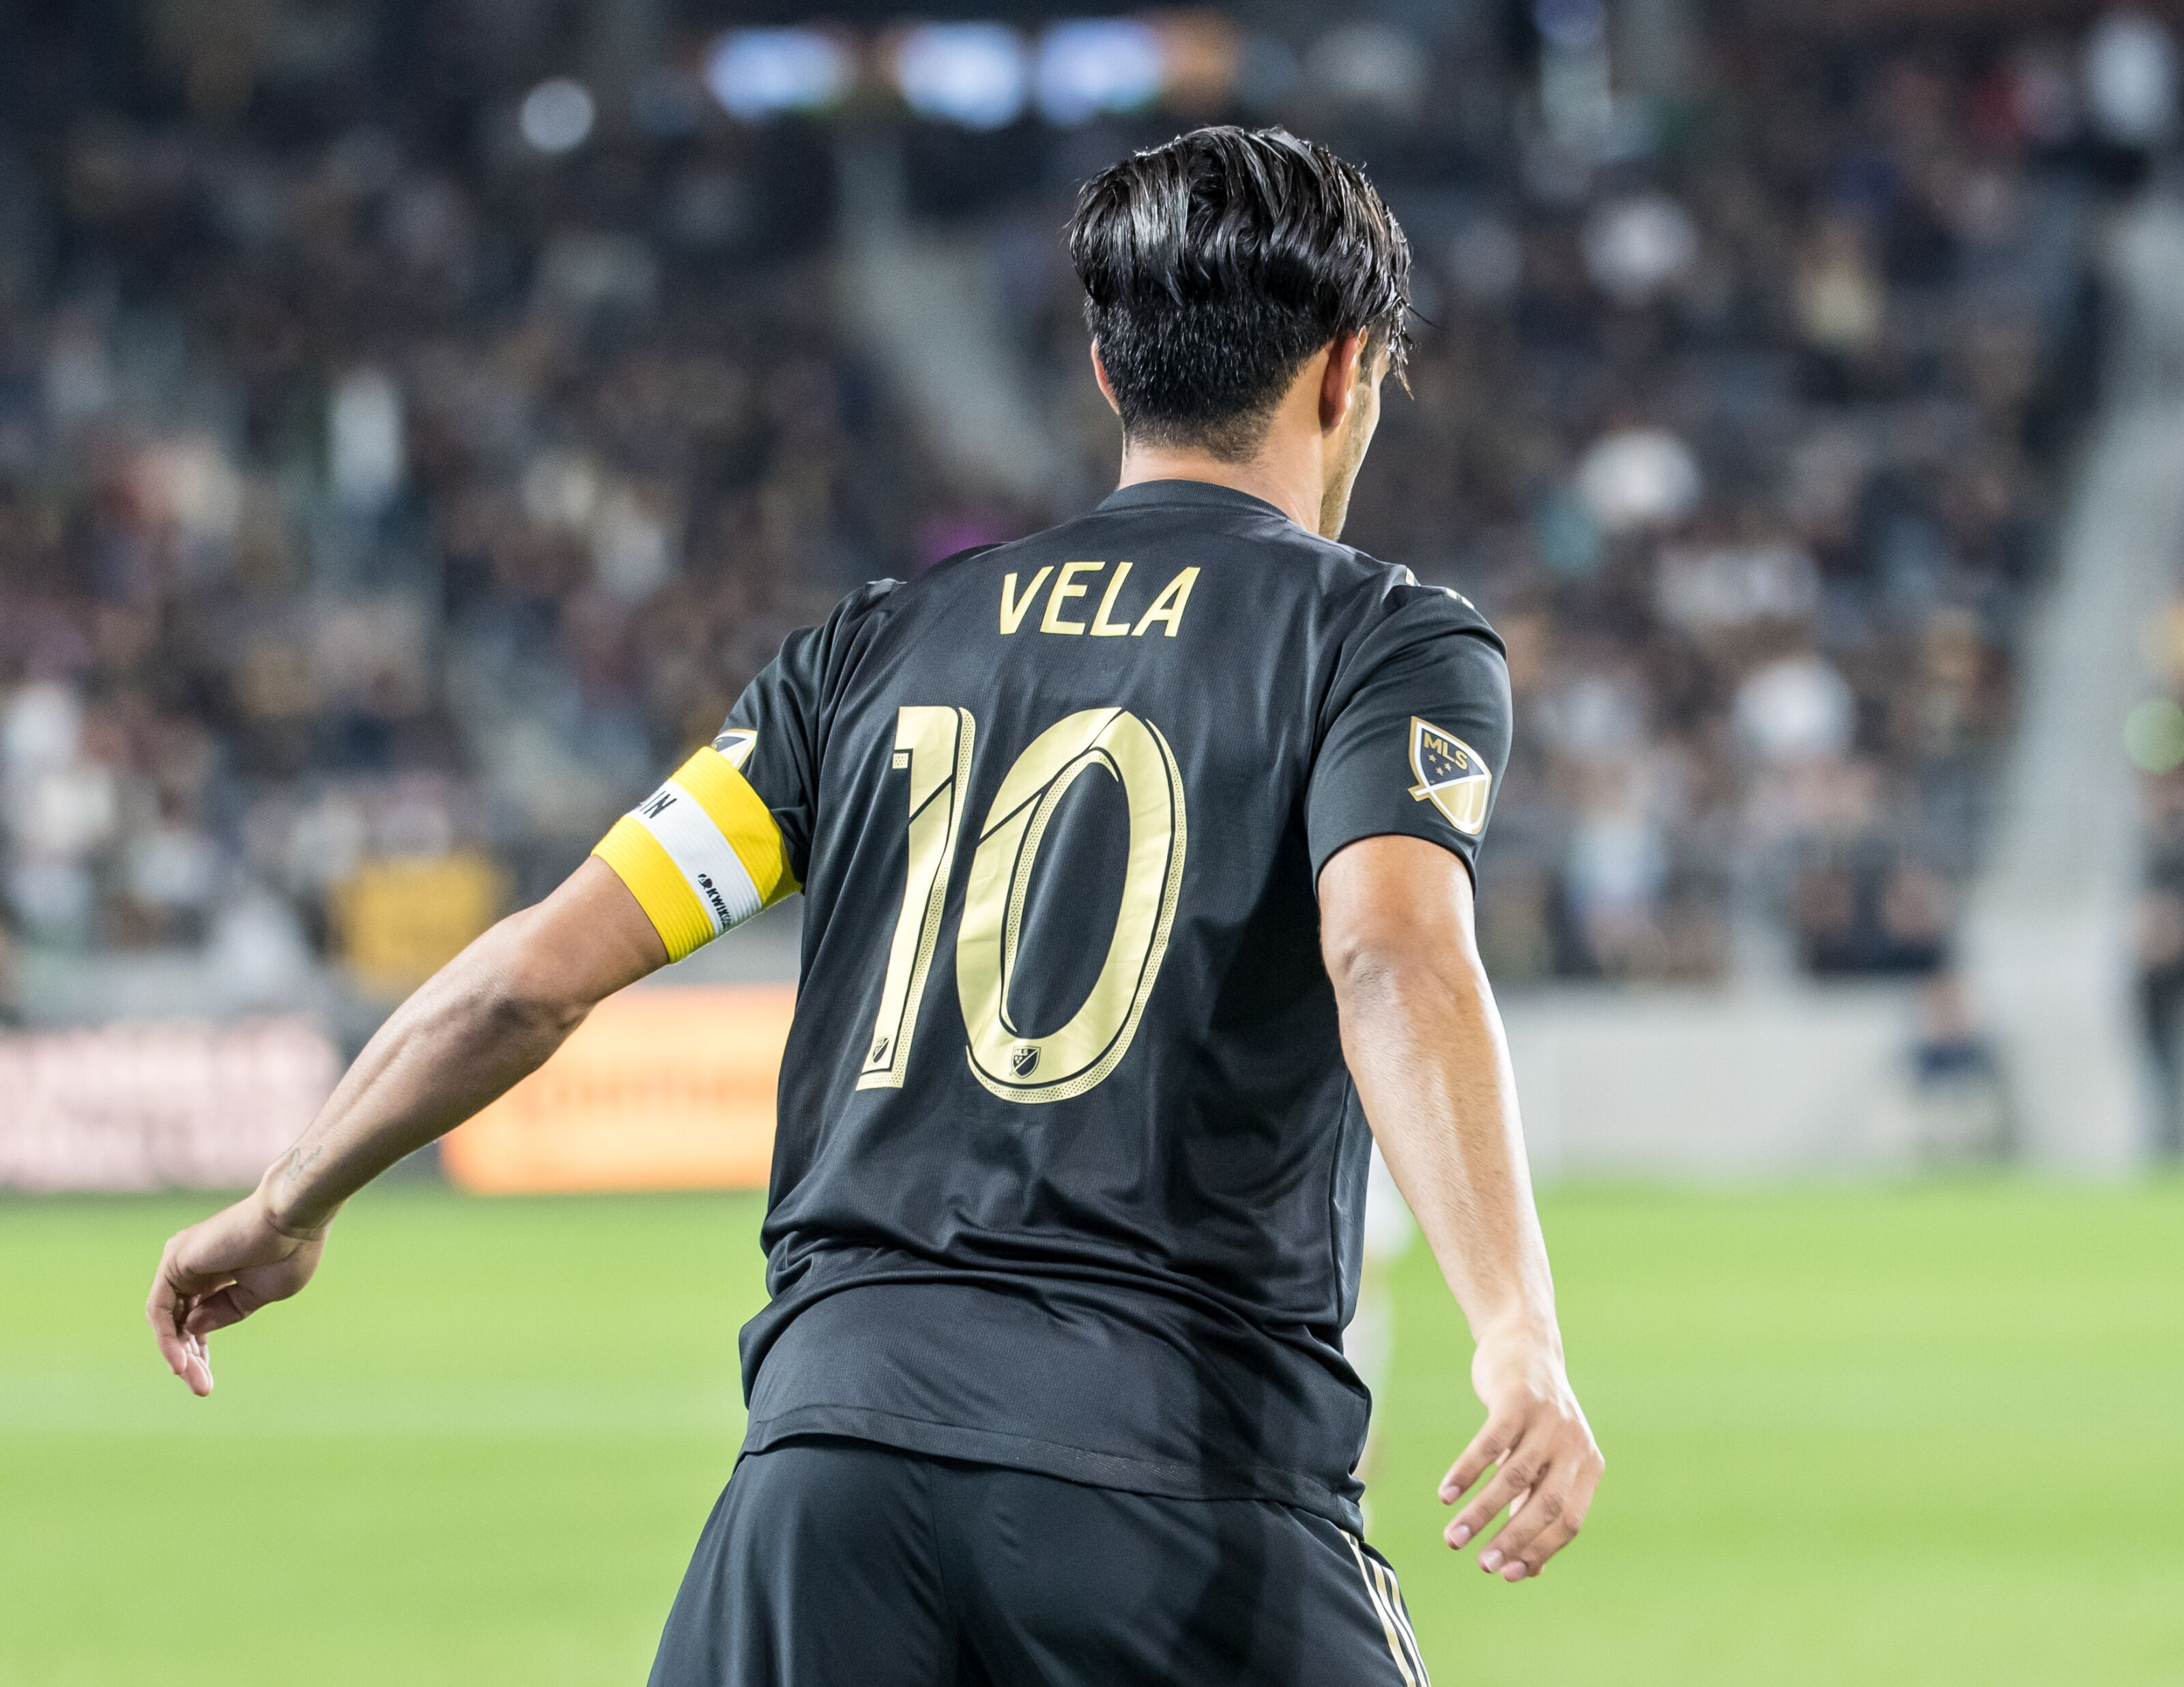 Carlos Vela Named Captain Of Mls All Stars For Second Time